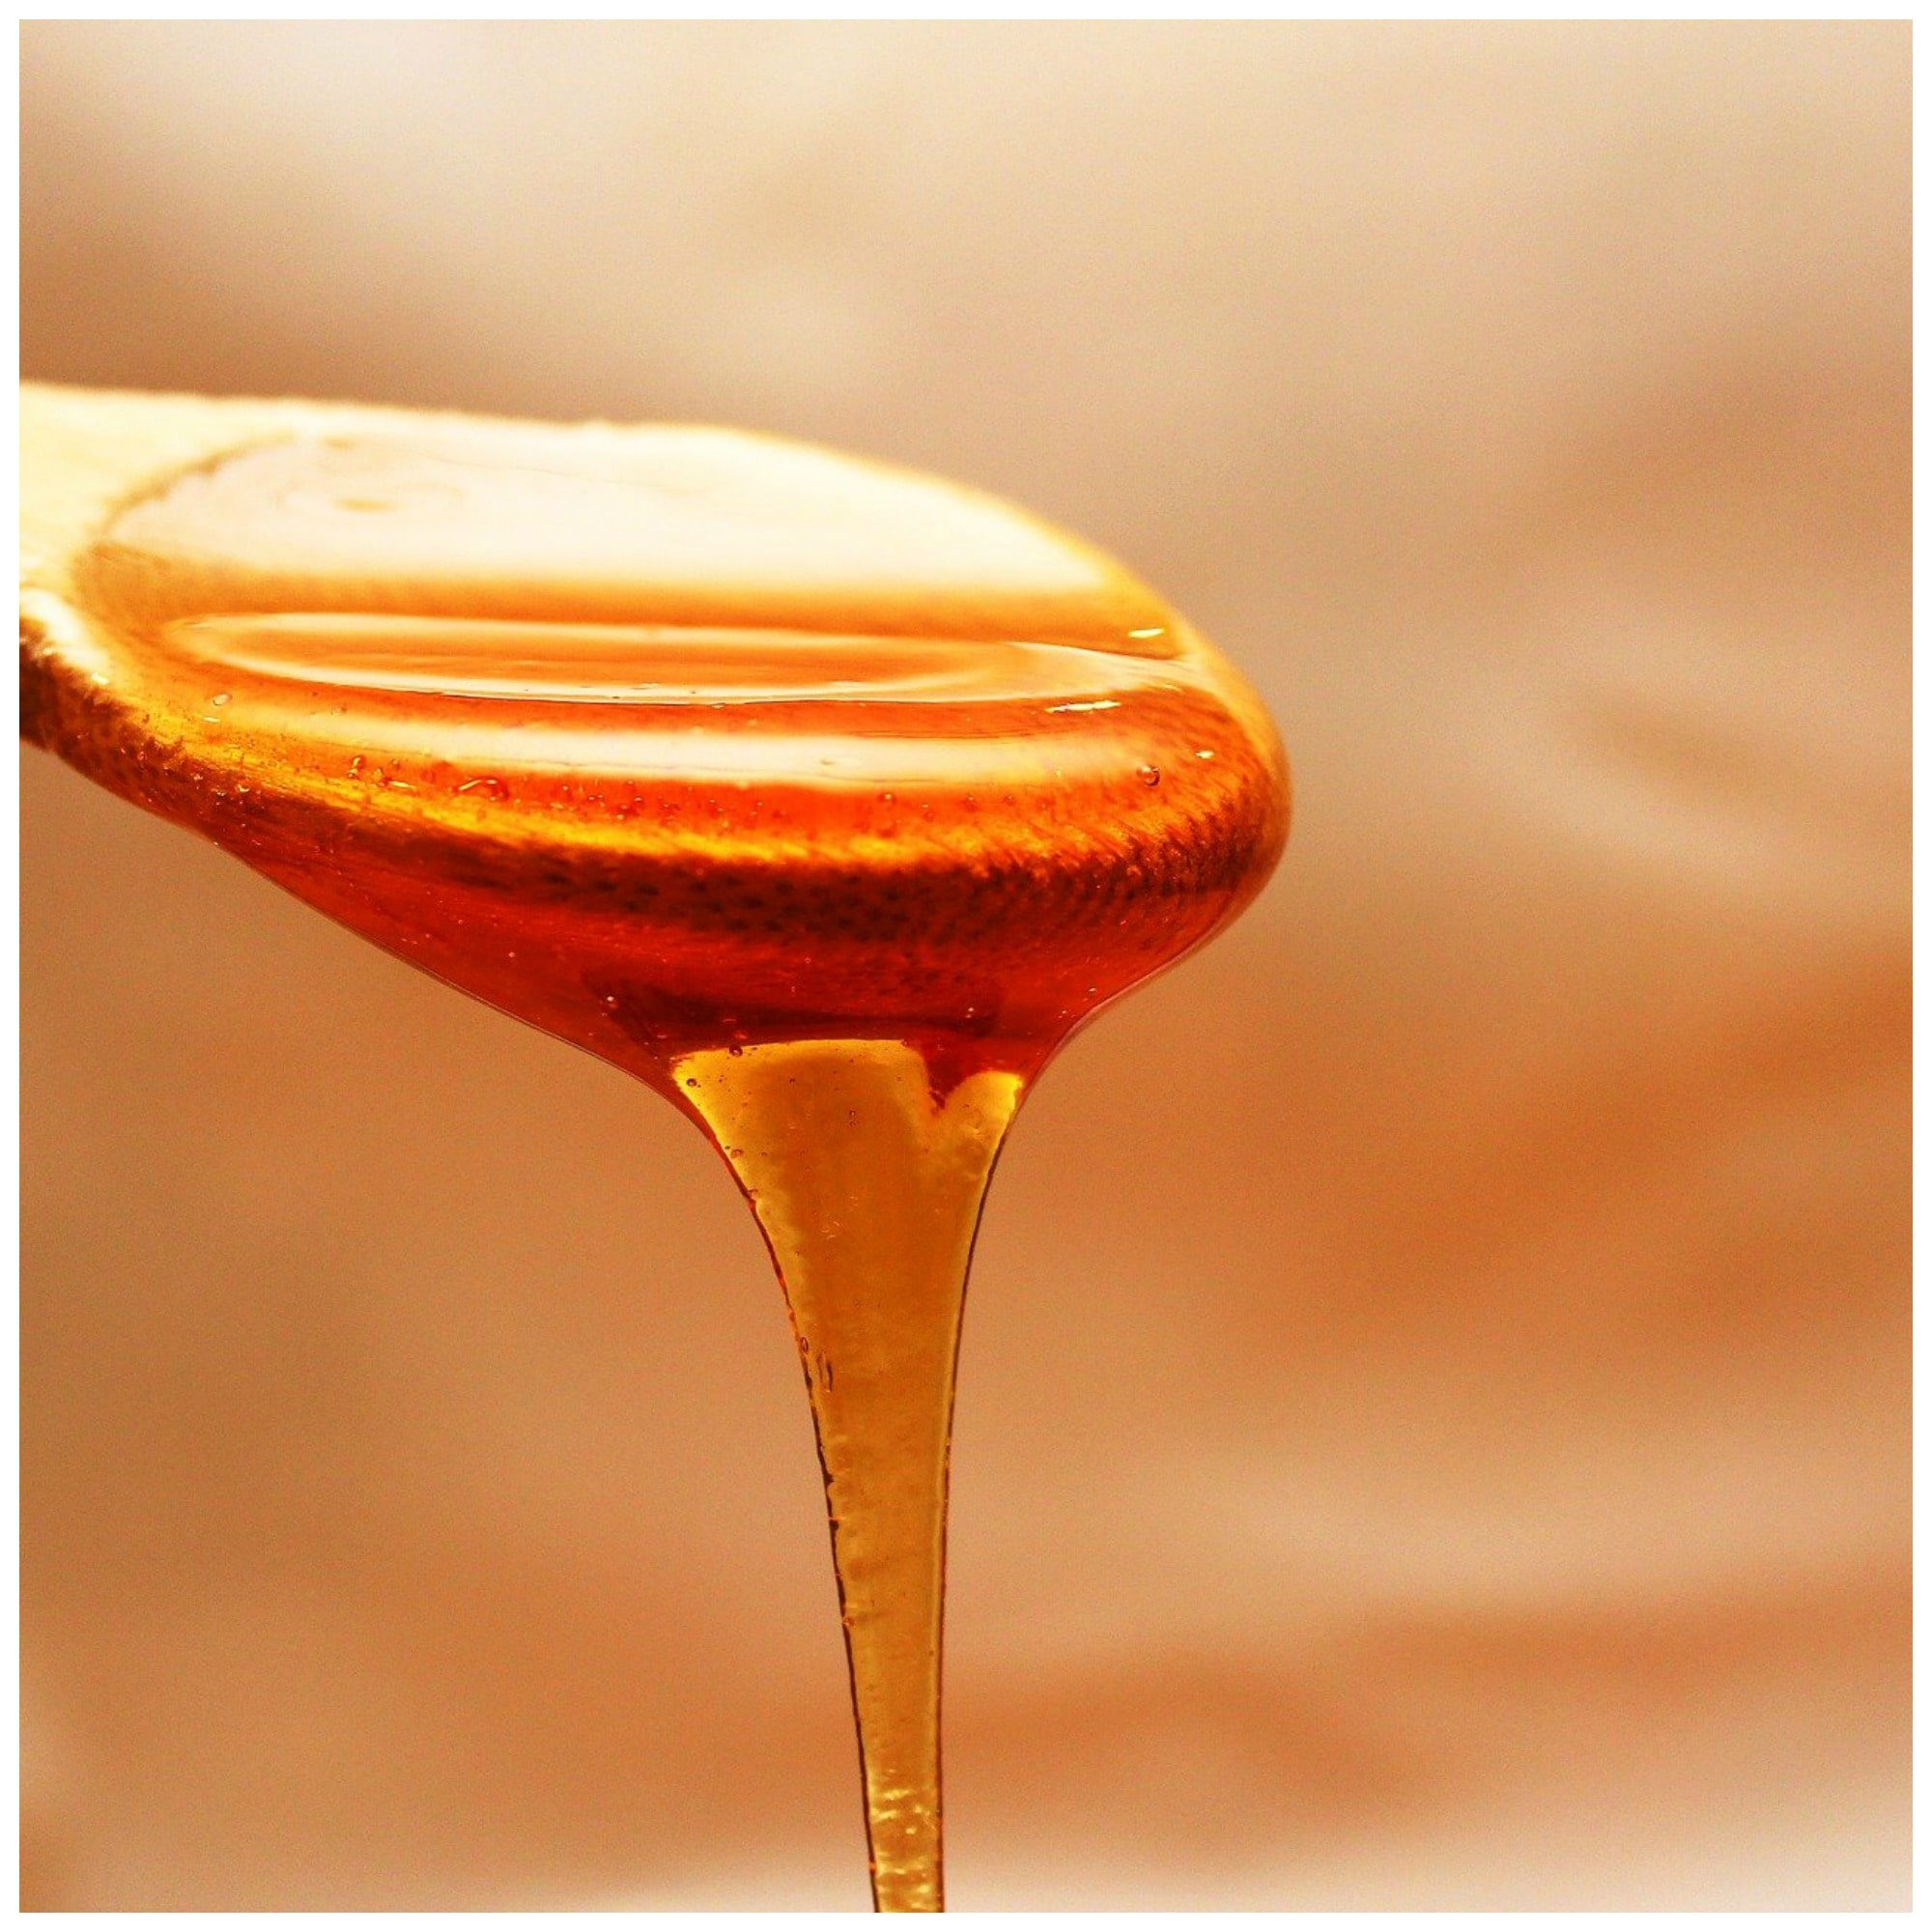 popular honey brands that may be toxic